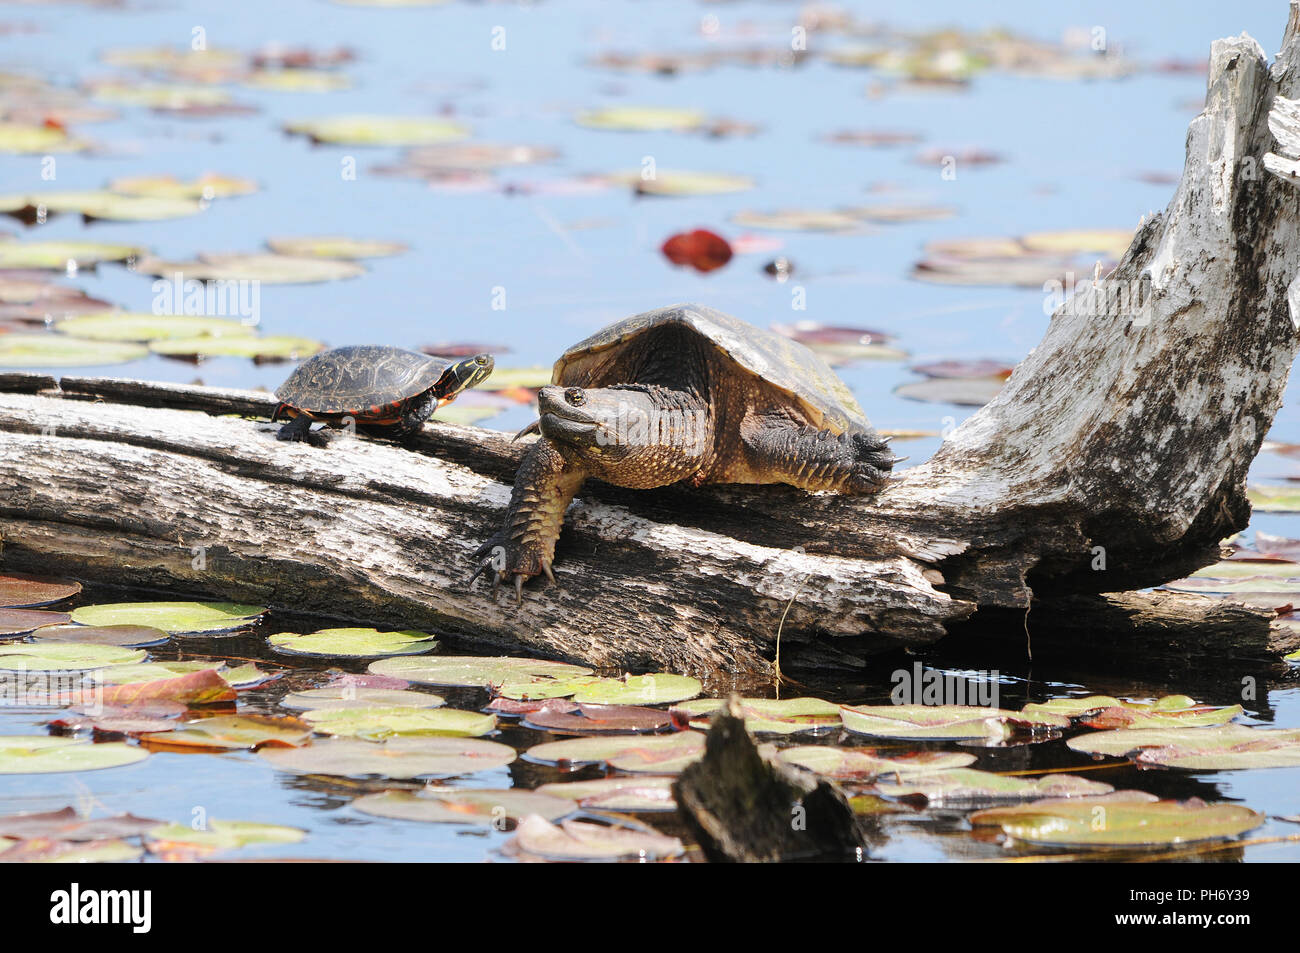 Painted turtle with a snapping turtle on a water log enjoying its surrounding. Stock Photo